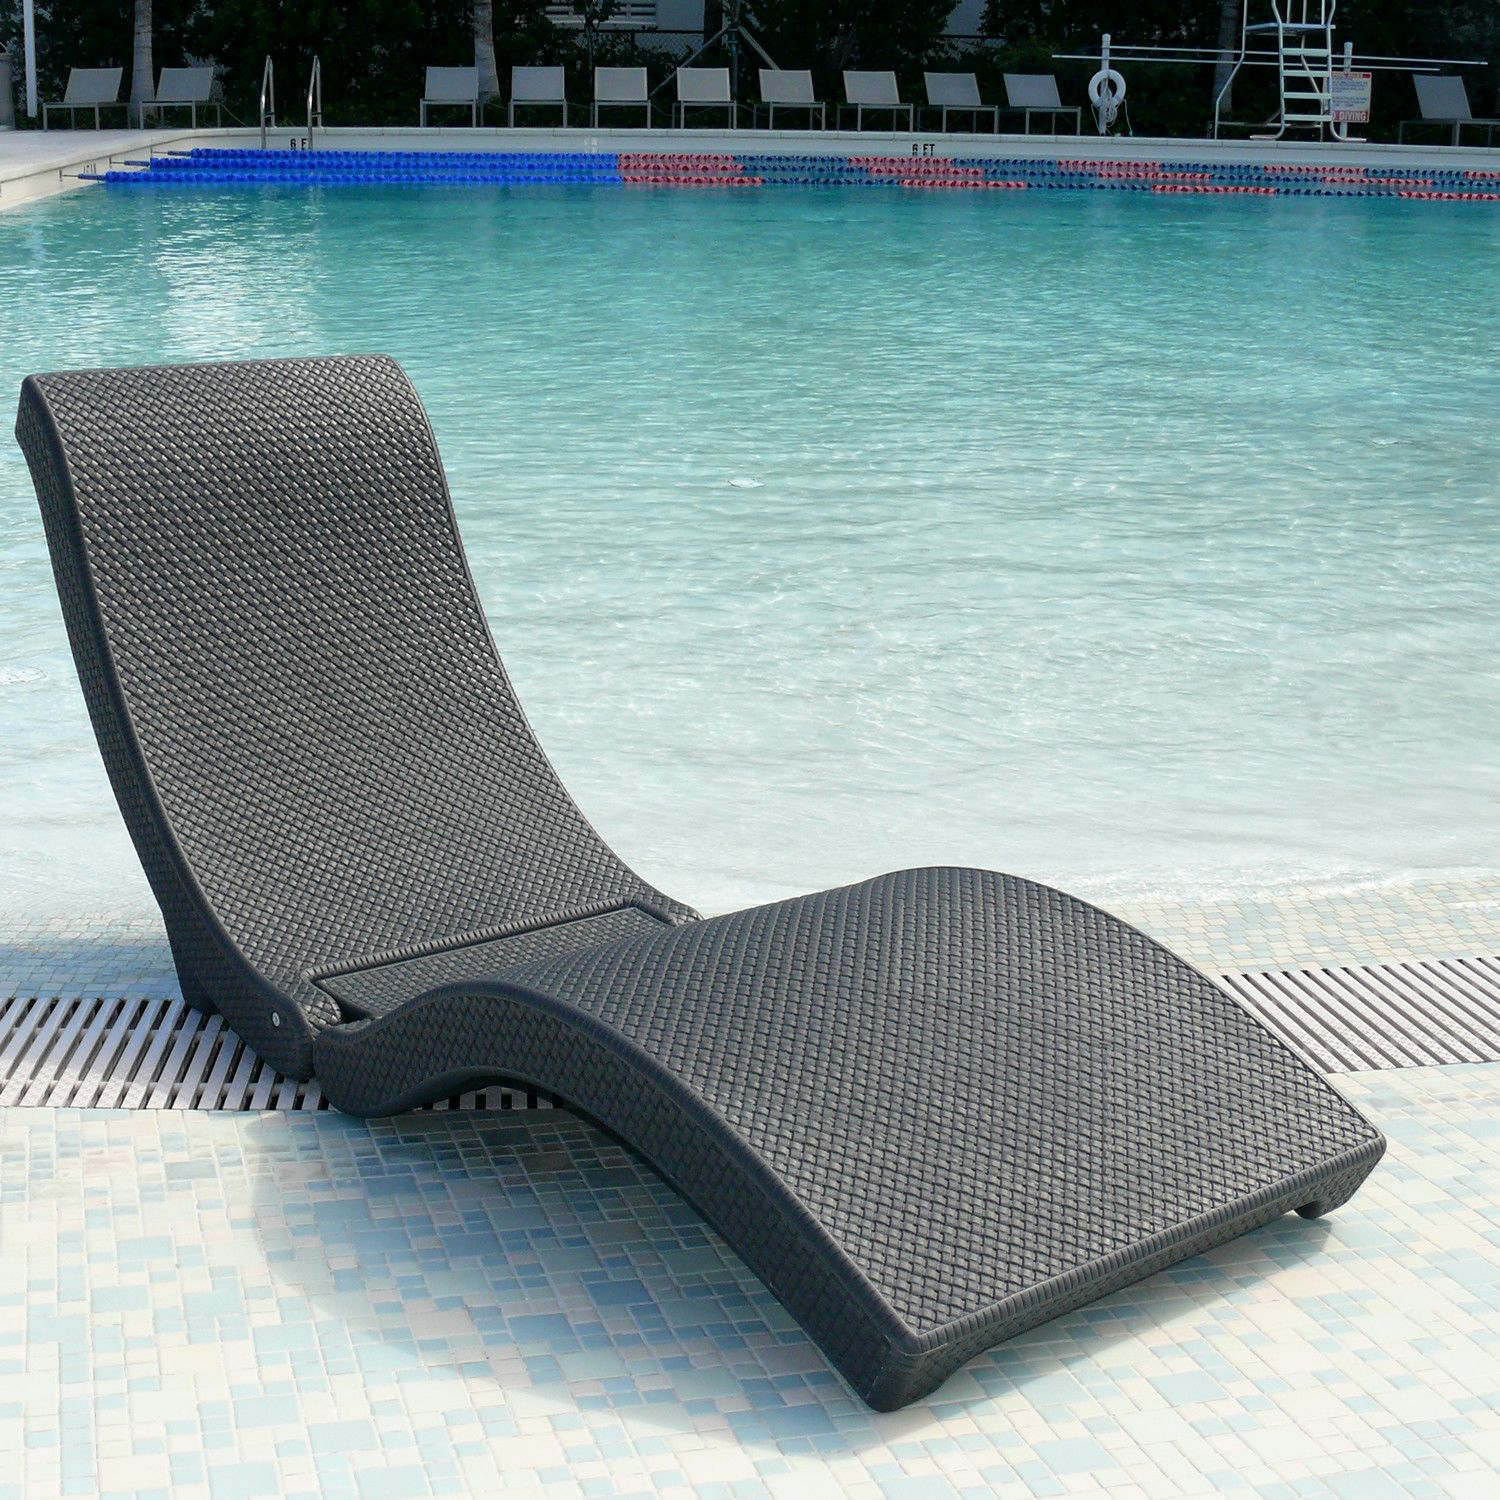 Water in Pool Chaise Lounge Chairs Outdoor Furniture Pinterest